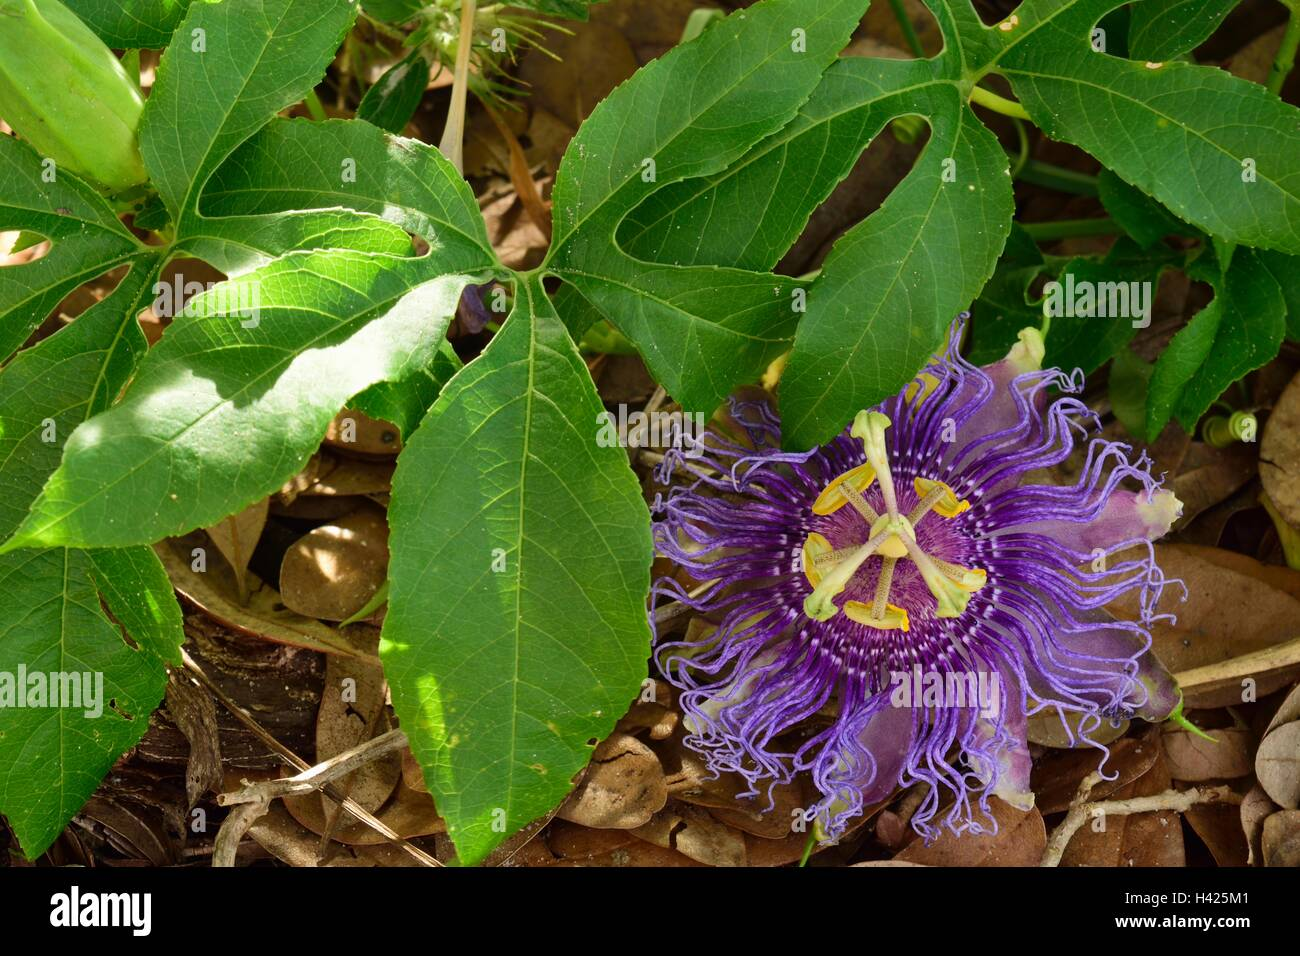 Gorgeous open Passiflora incarnata or Purple Passion Flower commonly known as maypop, in a botanical garden in Florida. - Stock Image